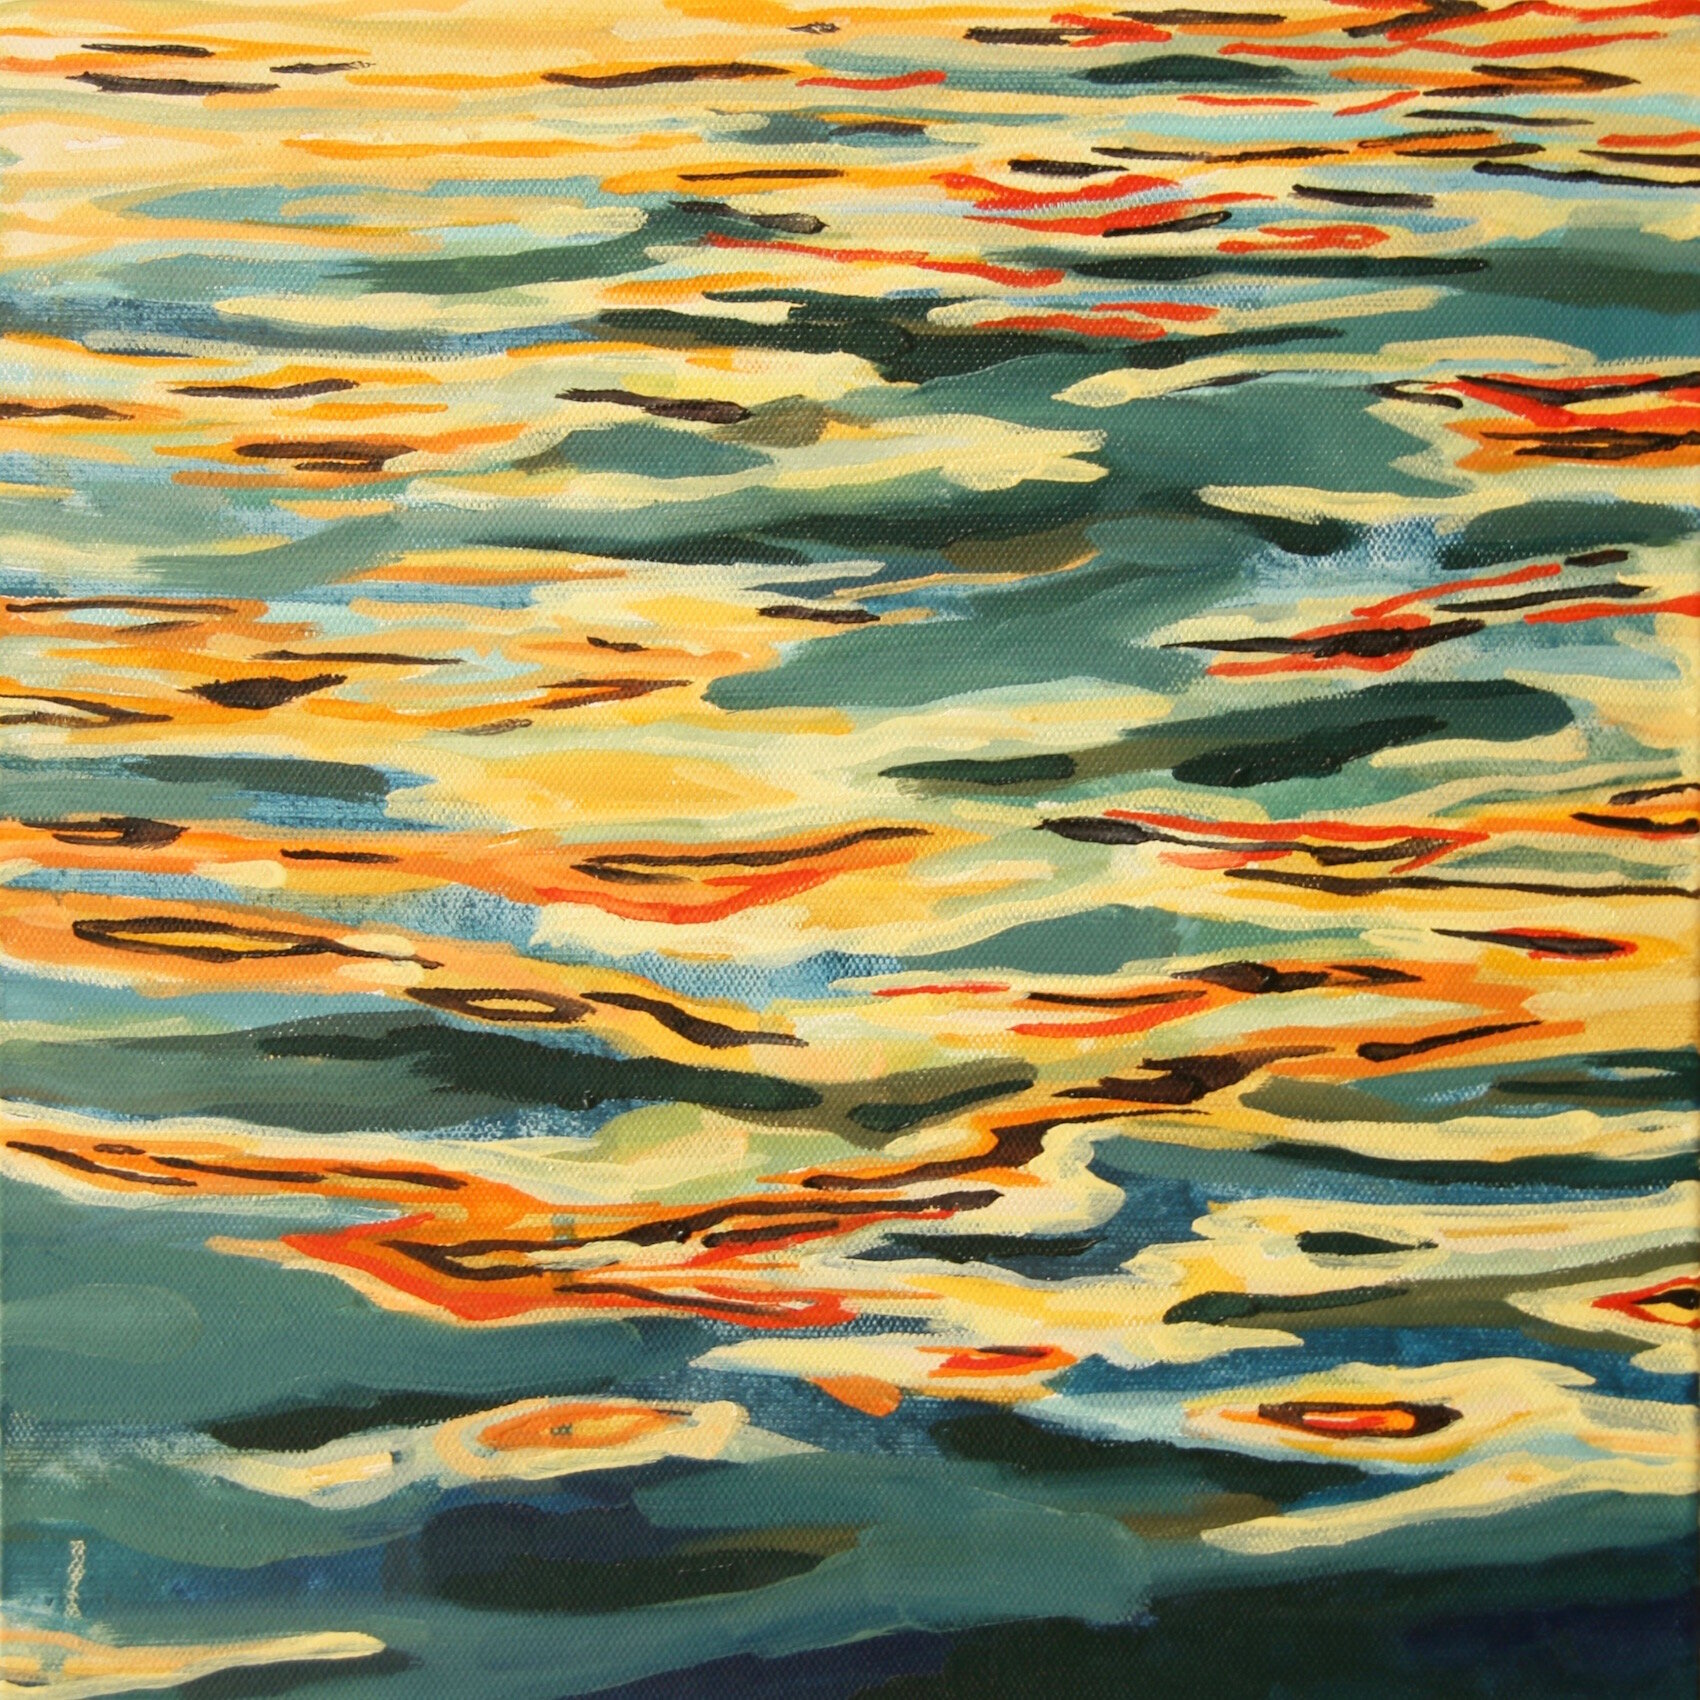 """'Permeate'  2015  12"""" x 12""""  water soluble oil on canvas  sold"""